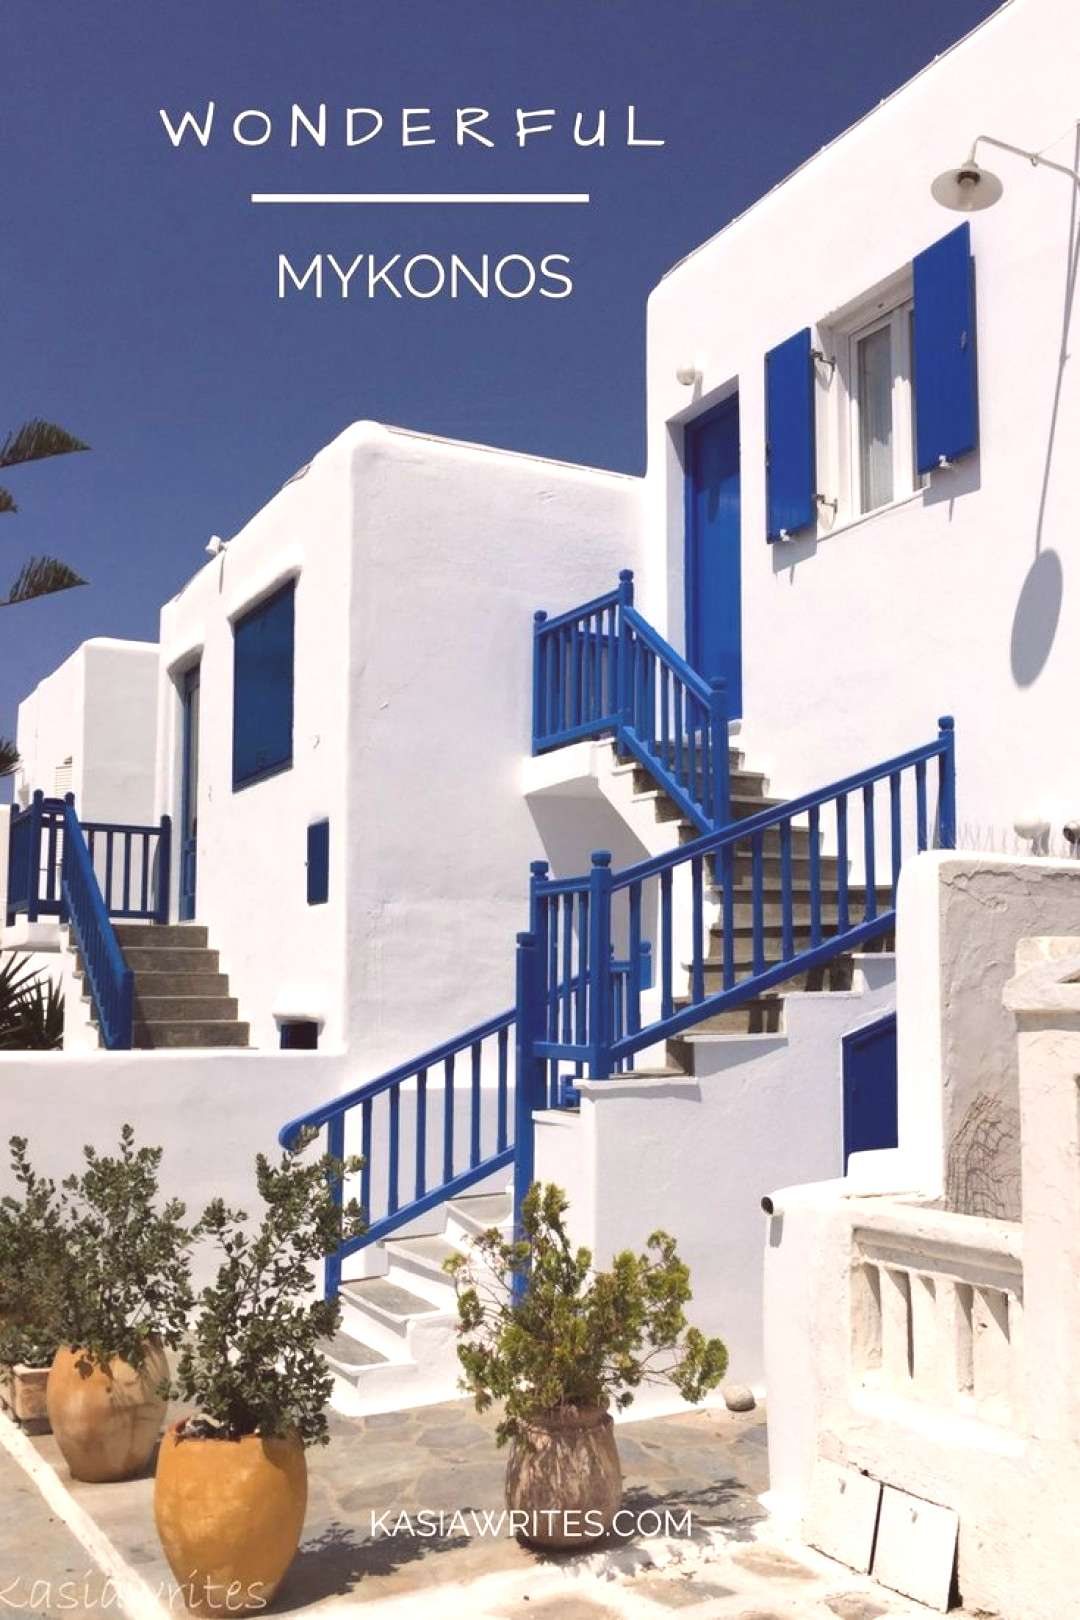 Top 7 Places to Visit in Cyprus Thinking of visiting the Greek Islands? Why not visit wonderful Myk